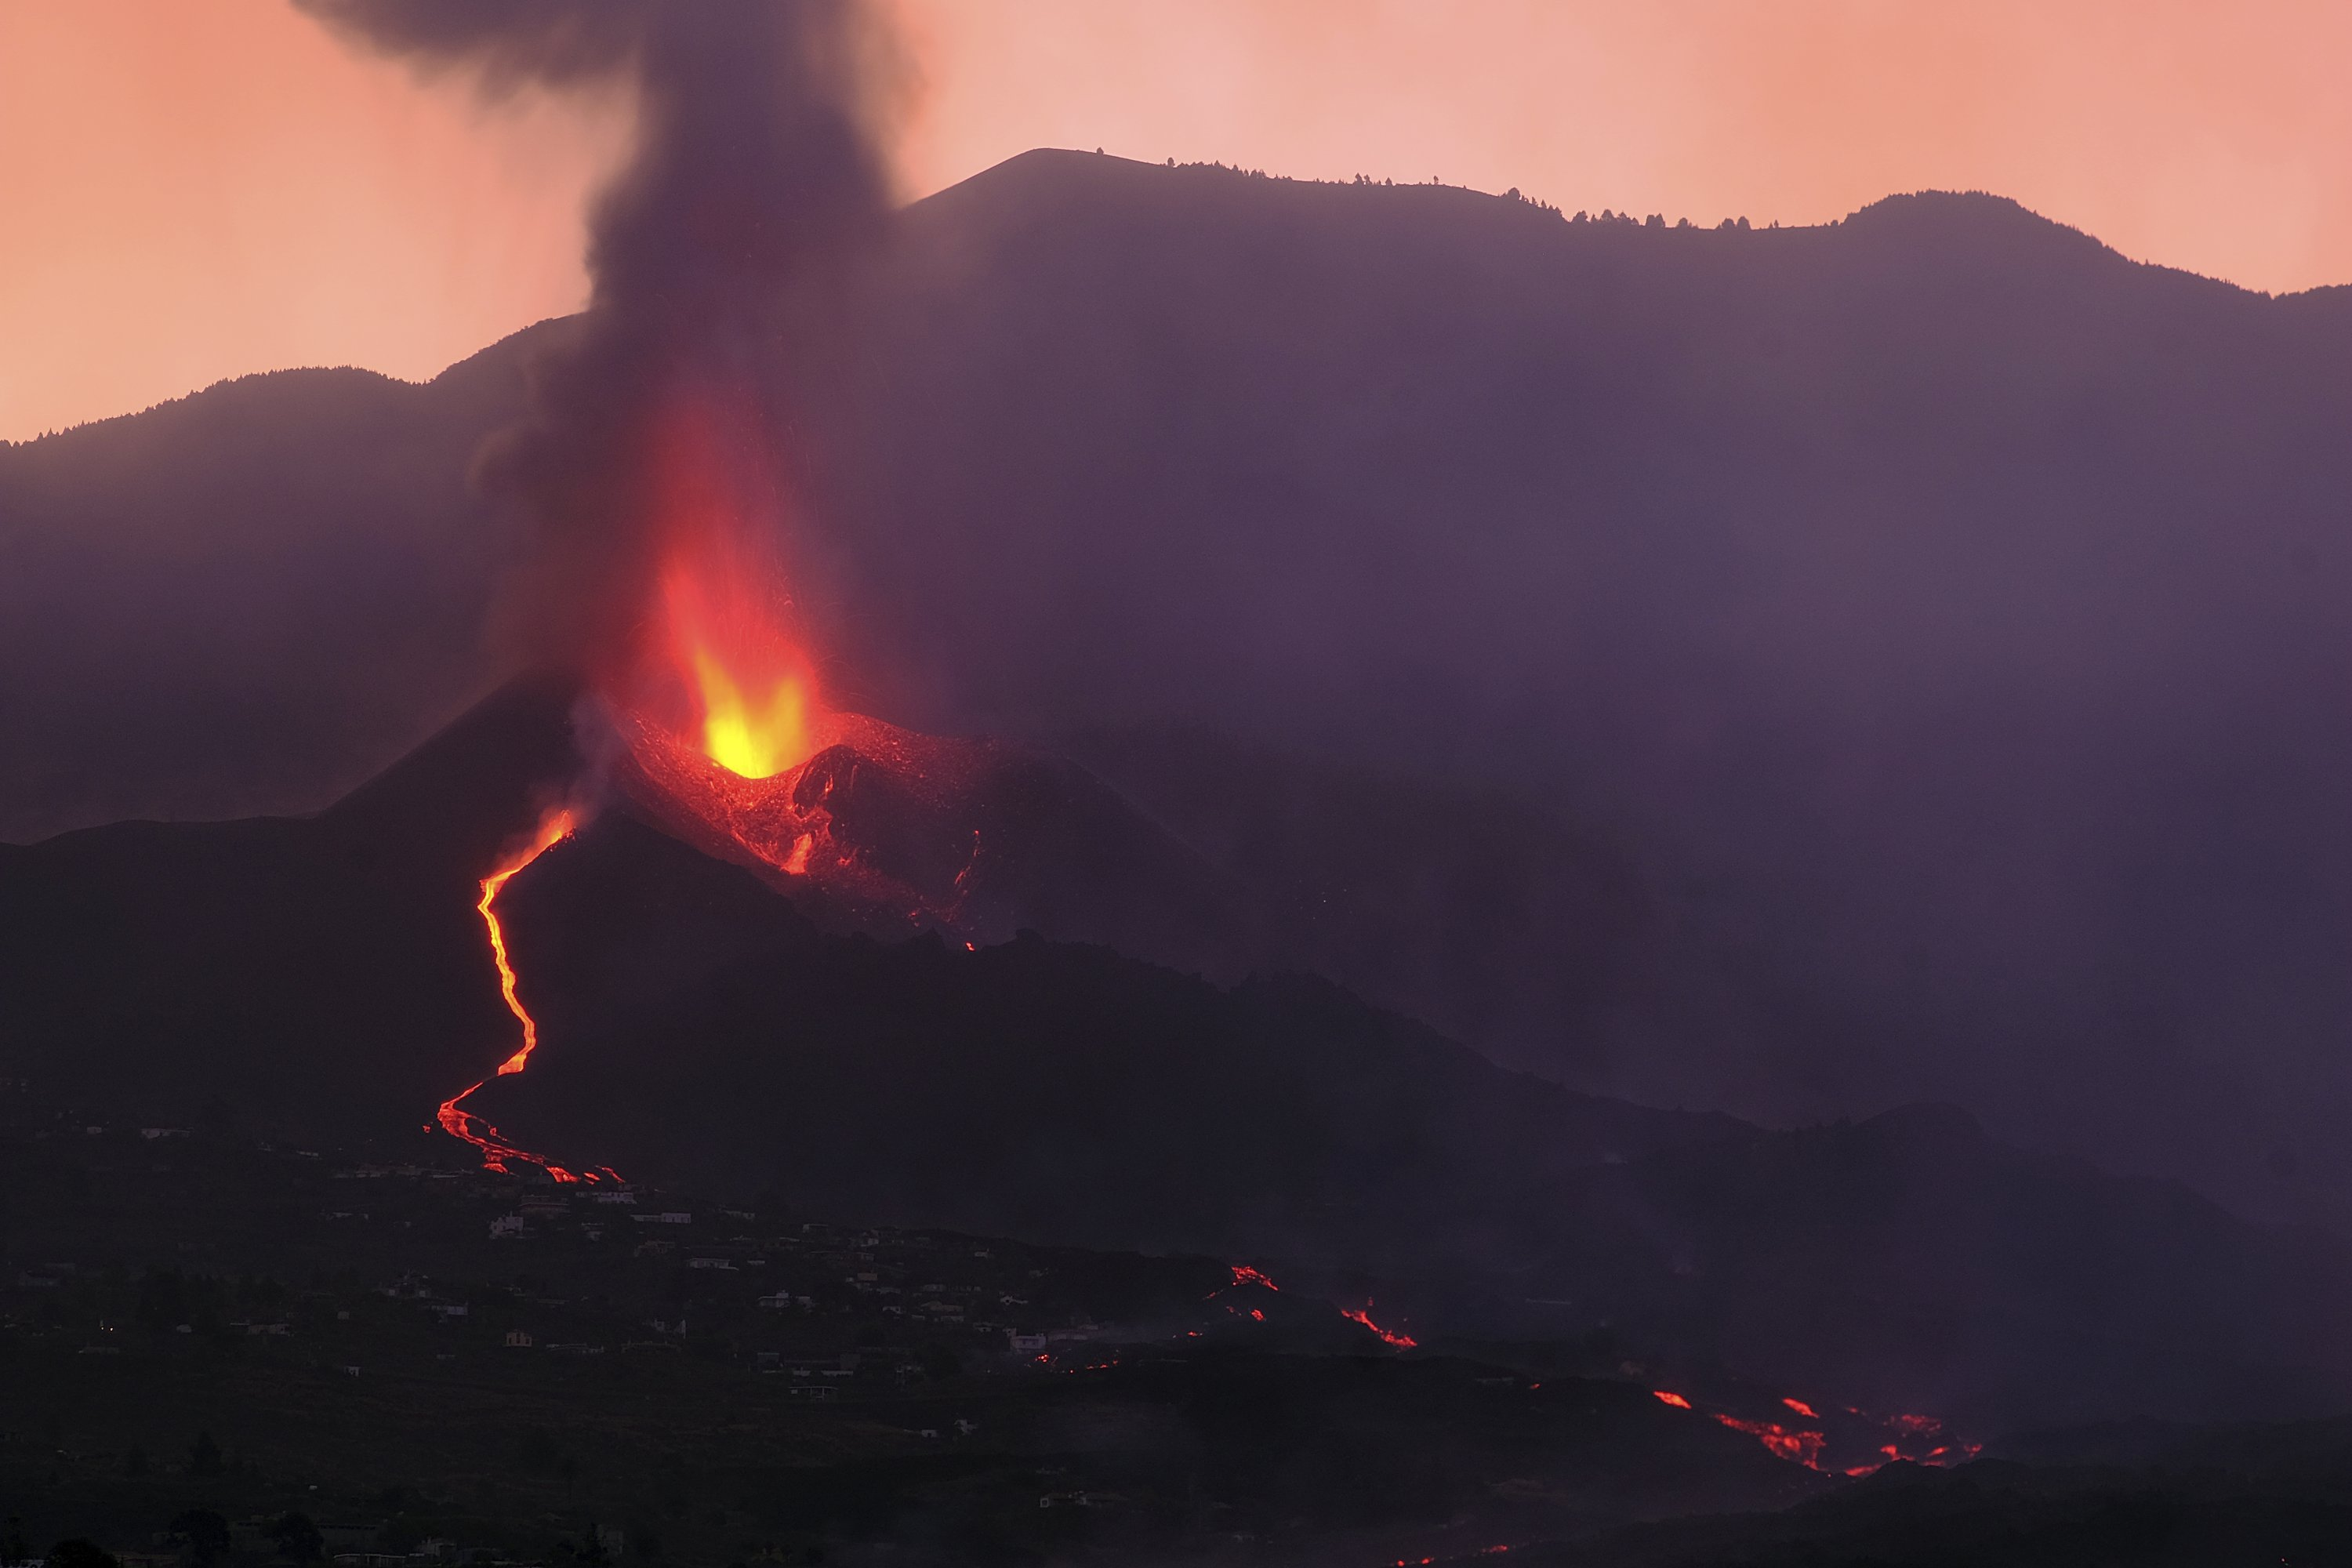 Lava flows from a volcano on the Canary island of La Palma, Spain in the early hours of Sunday, Sept. 26, 2021. (AP Photo)